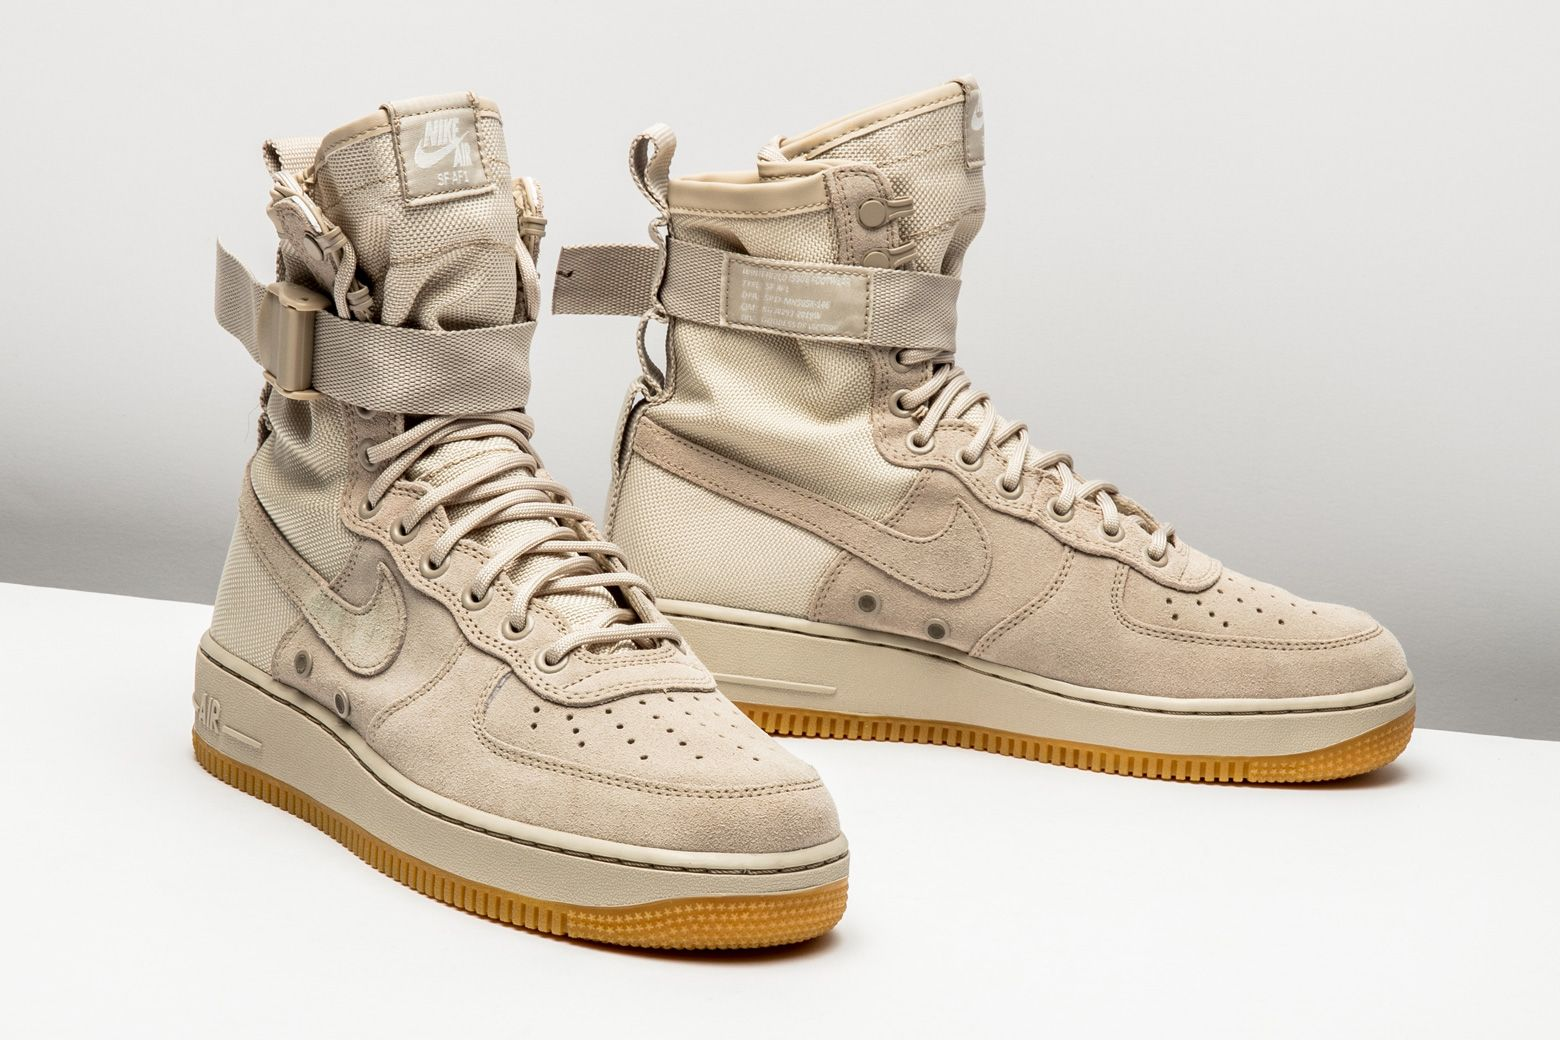 check out 7364b 13723 Crisp and clean, the military-inspired Nike SF-Air Force 1 returns in